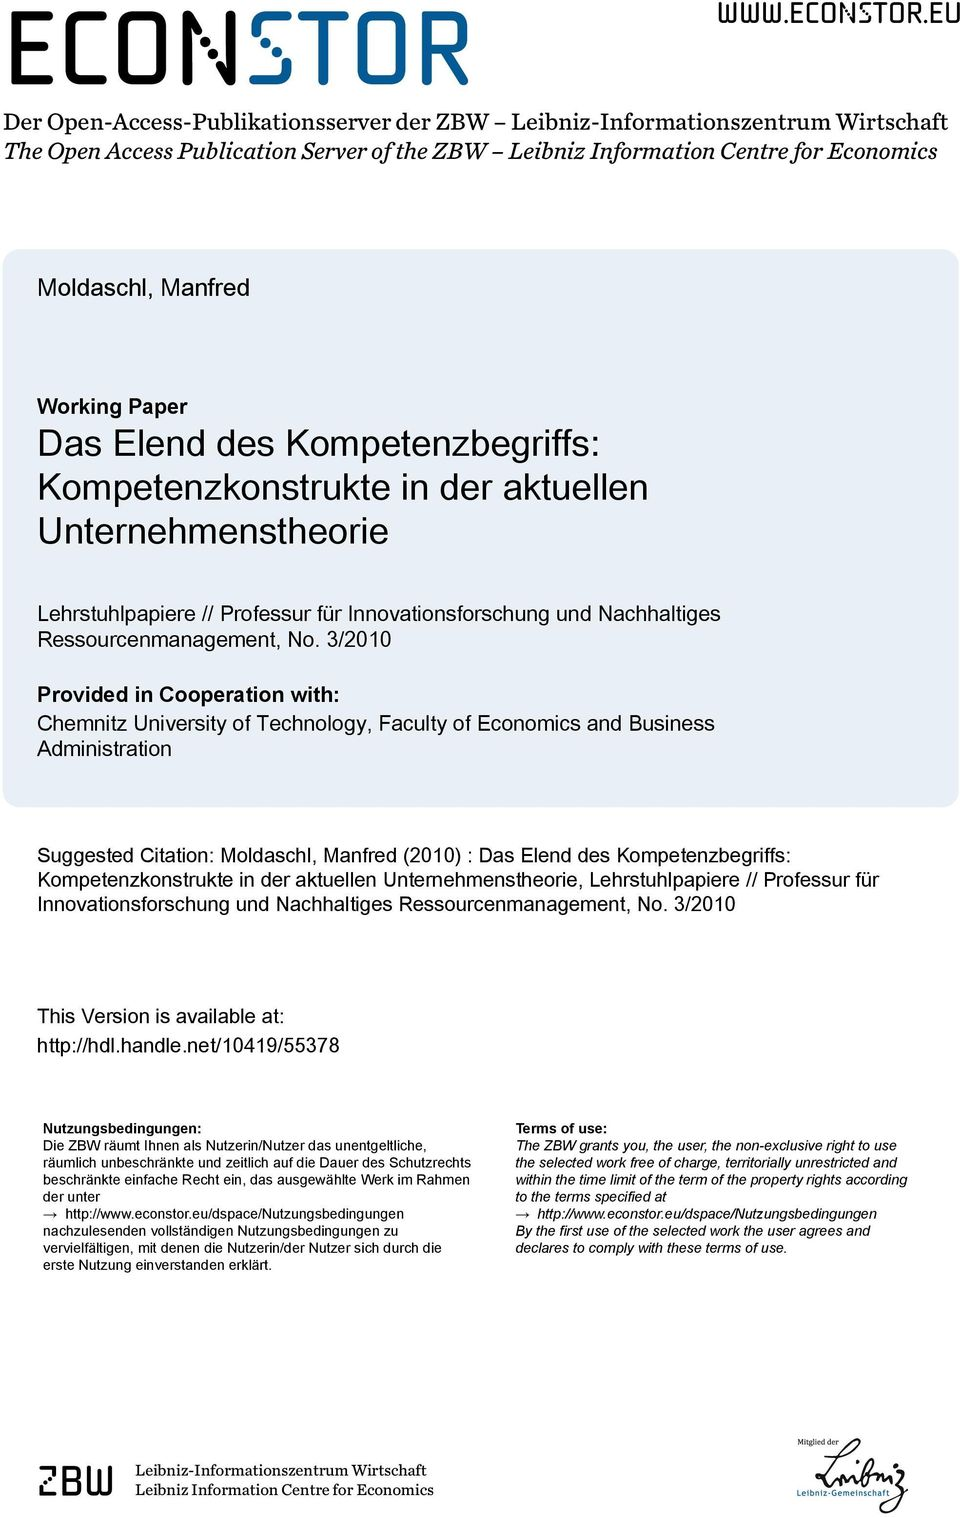 eu Der Open-Access-Publikationsserver der ZBW Leibniz-Informationszentrum Wirtschaft The Open Access Publication Server of the ZBW Leibniz Information Centre for Economics Moldaschl, Manfred Working